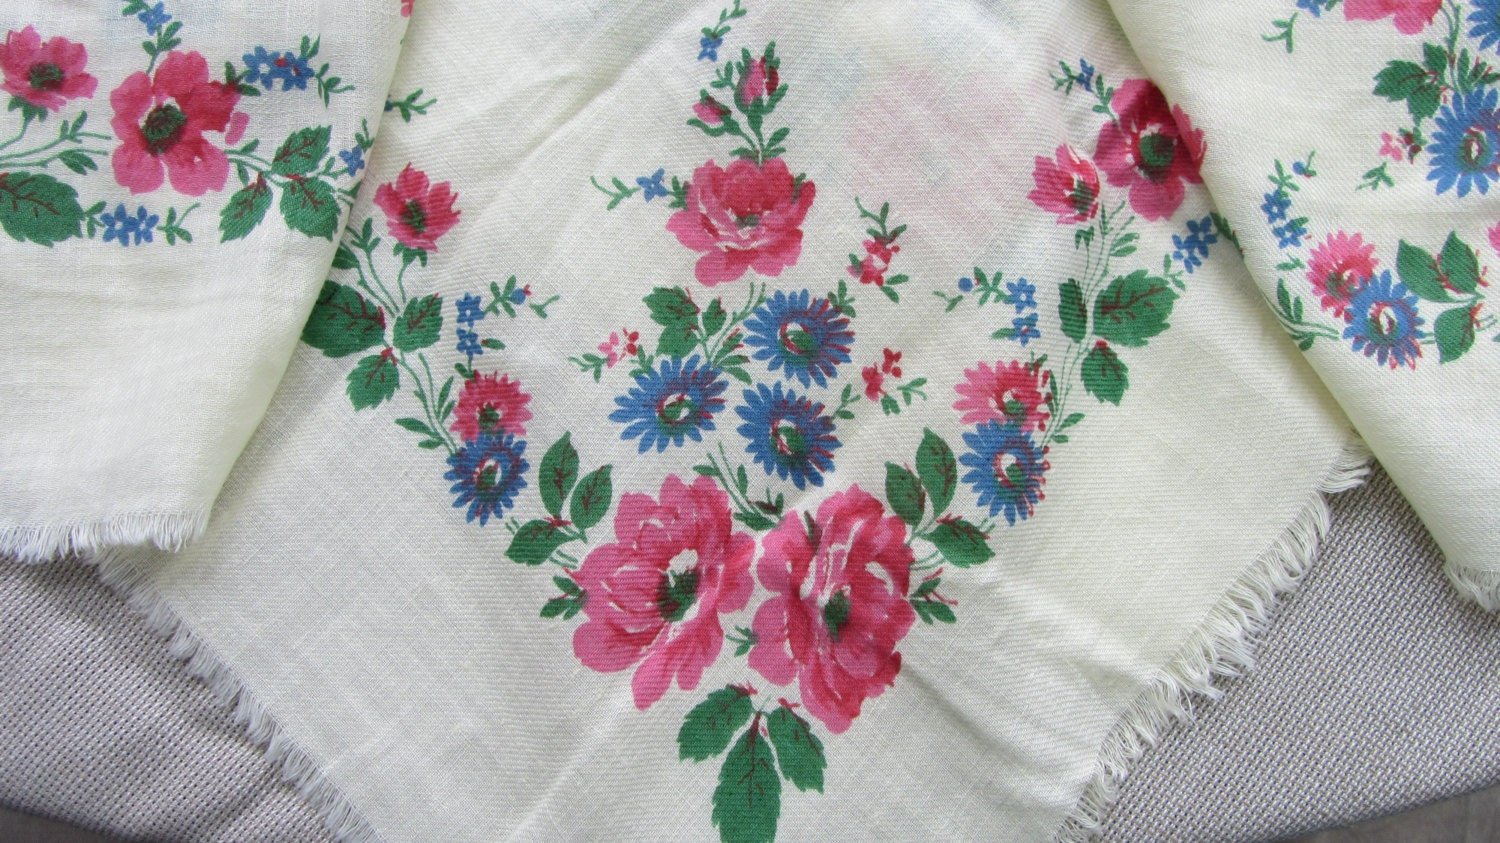 Floral Scarf with pink and blue flowers, Vintage Floral cotton white shawl, Pink